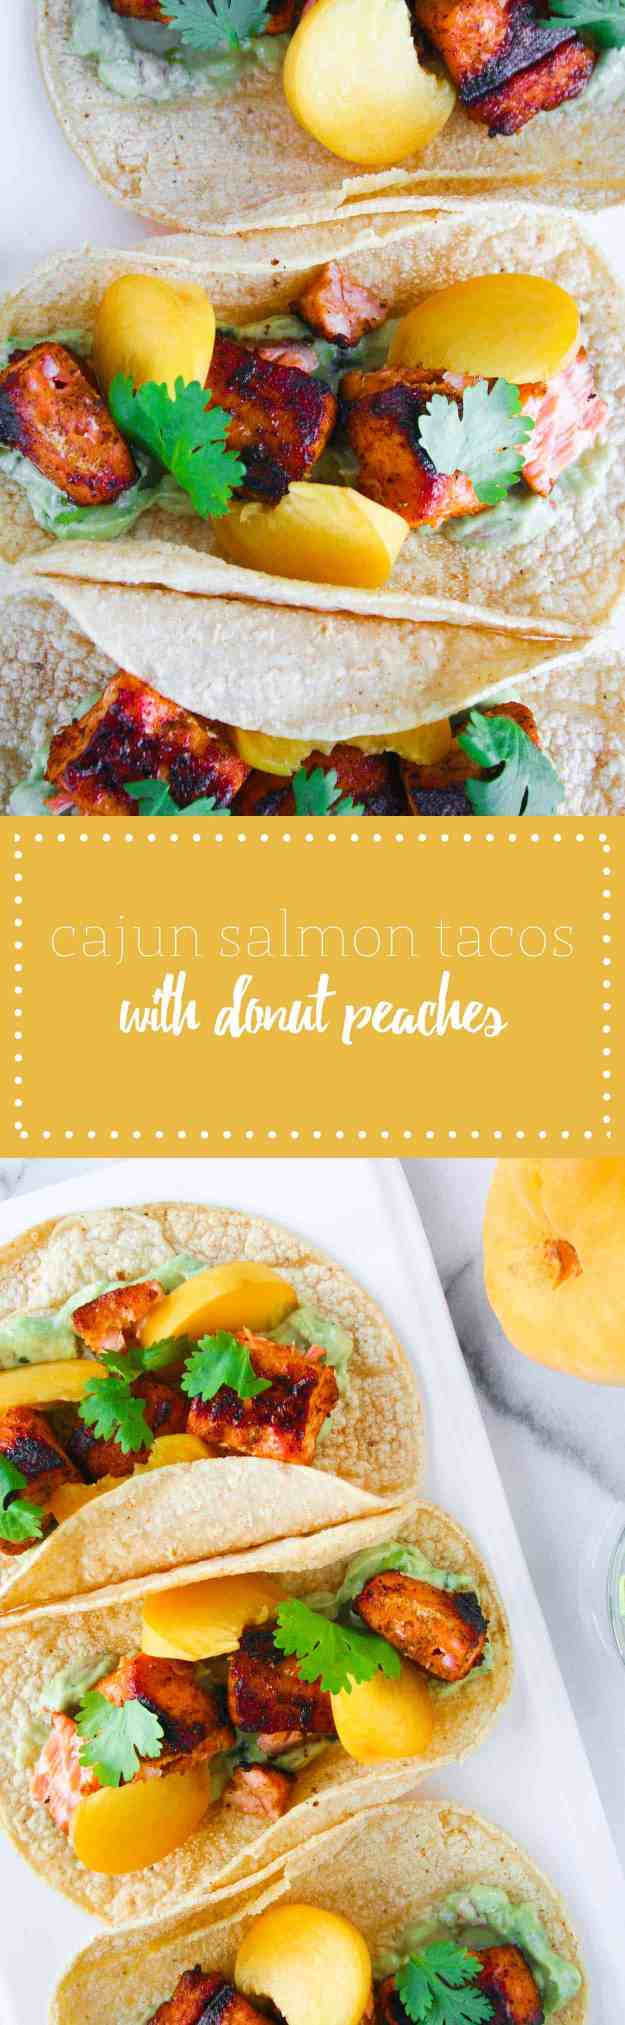 A quick and easy weeknight dinner - Cajun Salmon Tacos! | hungrybynature.com